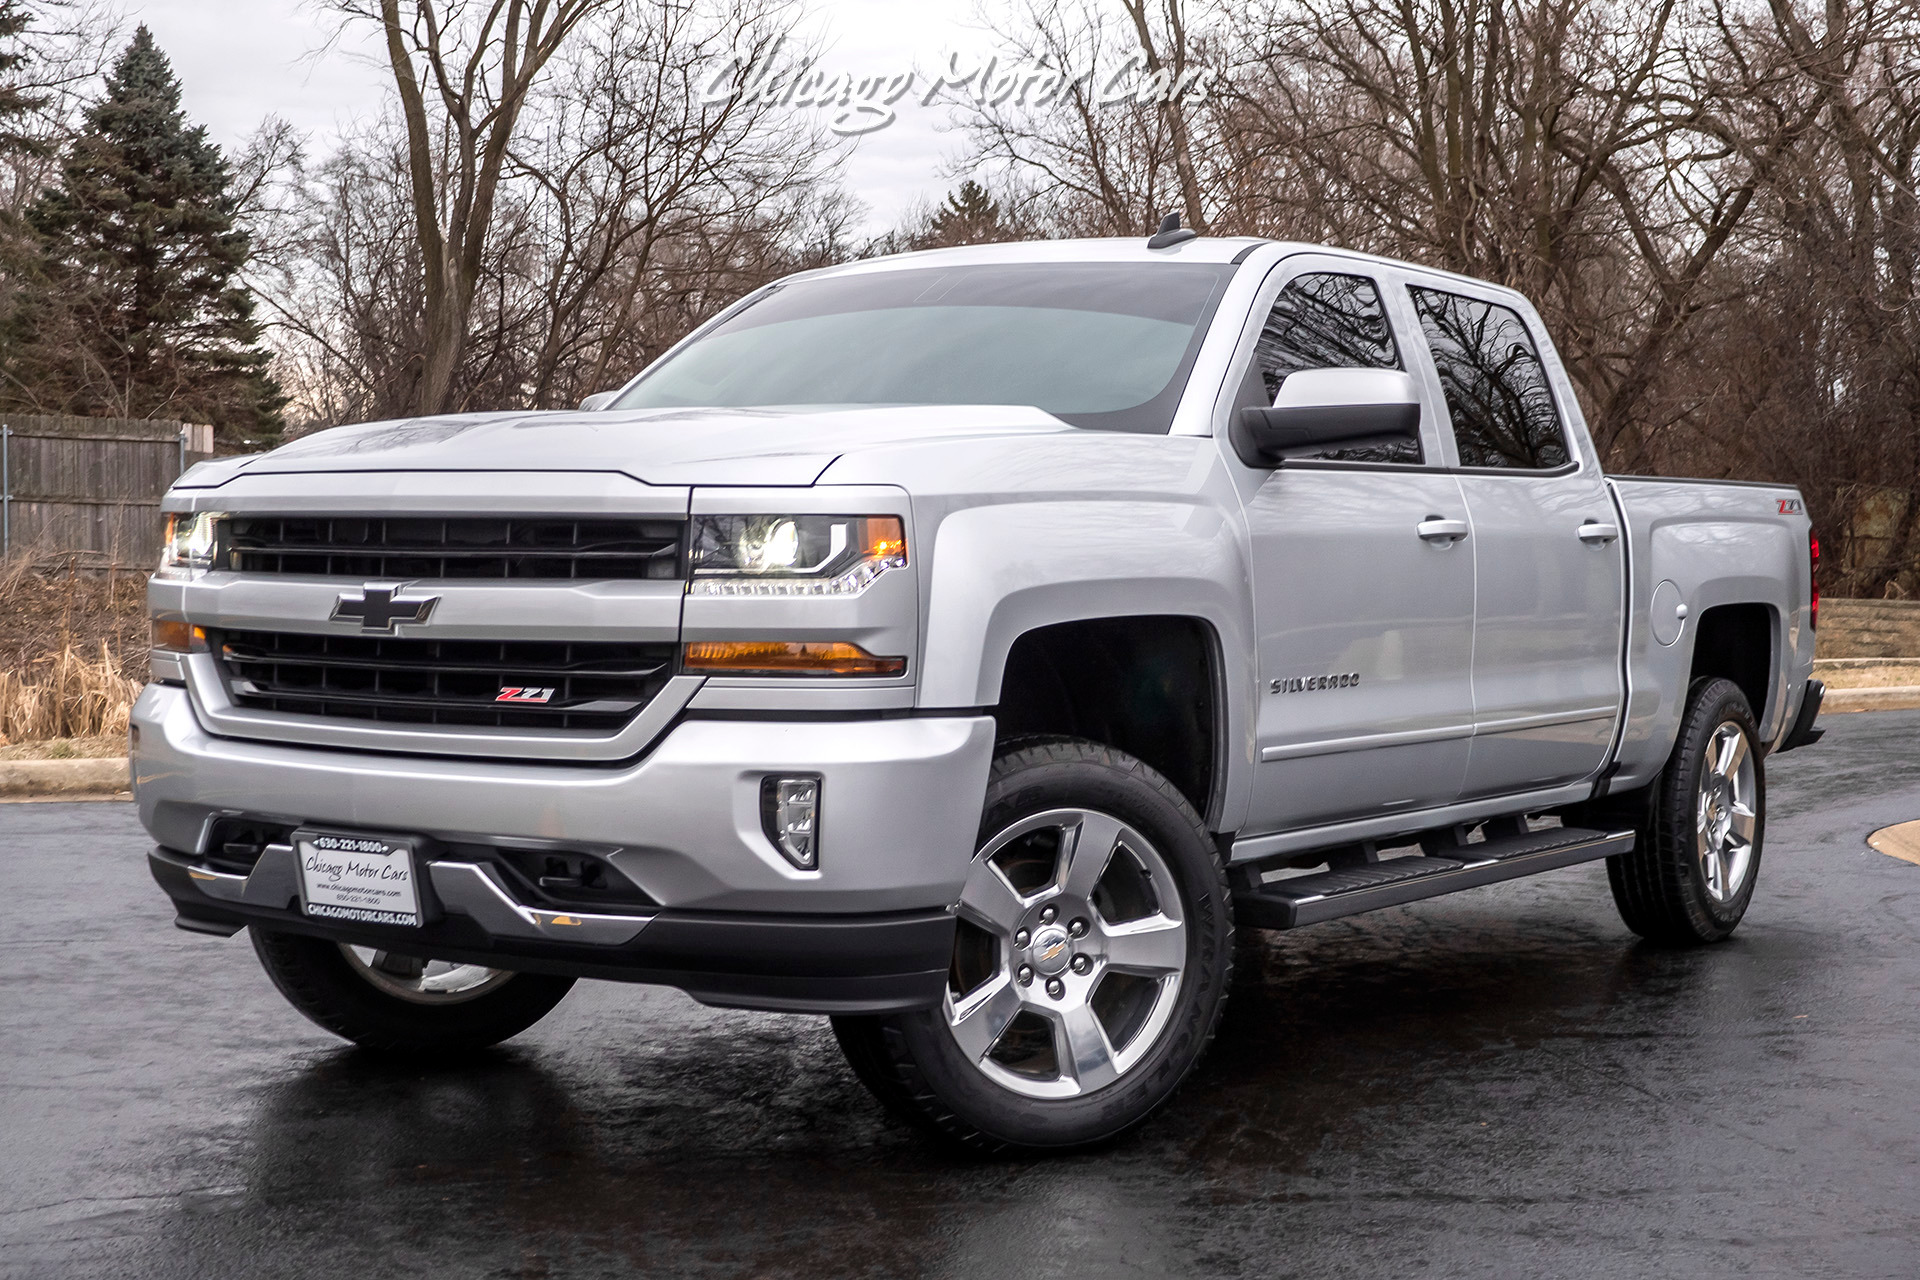 Used 2017 Chevrolet Silverado 1500 Crew Cab Short Bed 4wd Lt Z71 Loaded W Options For Sale 30 800 Chicago Motor Cars Stock 17011